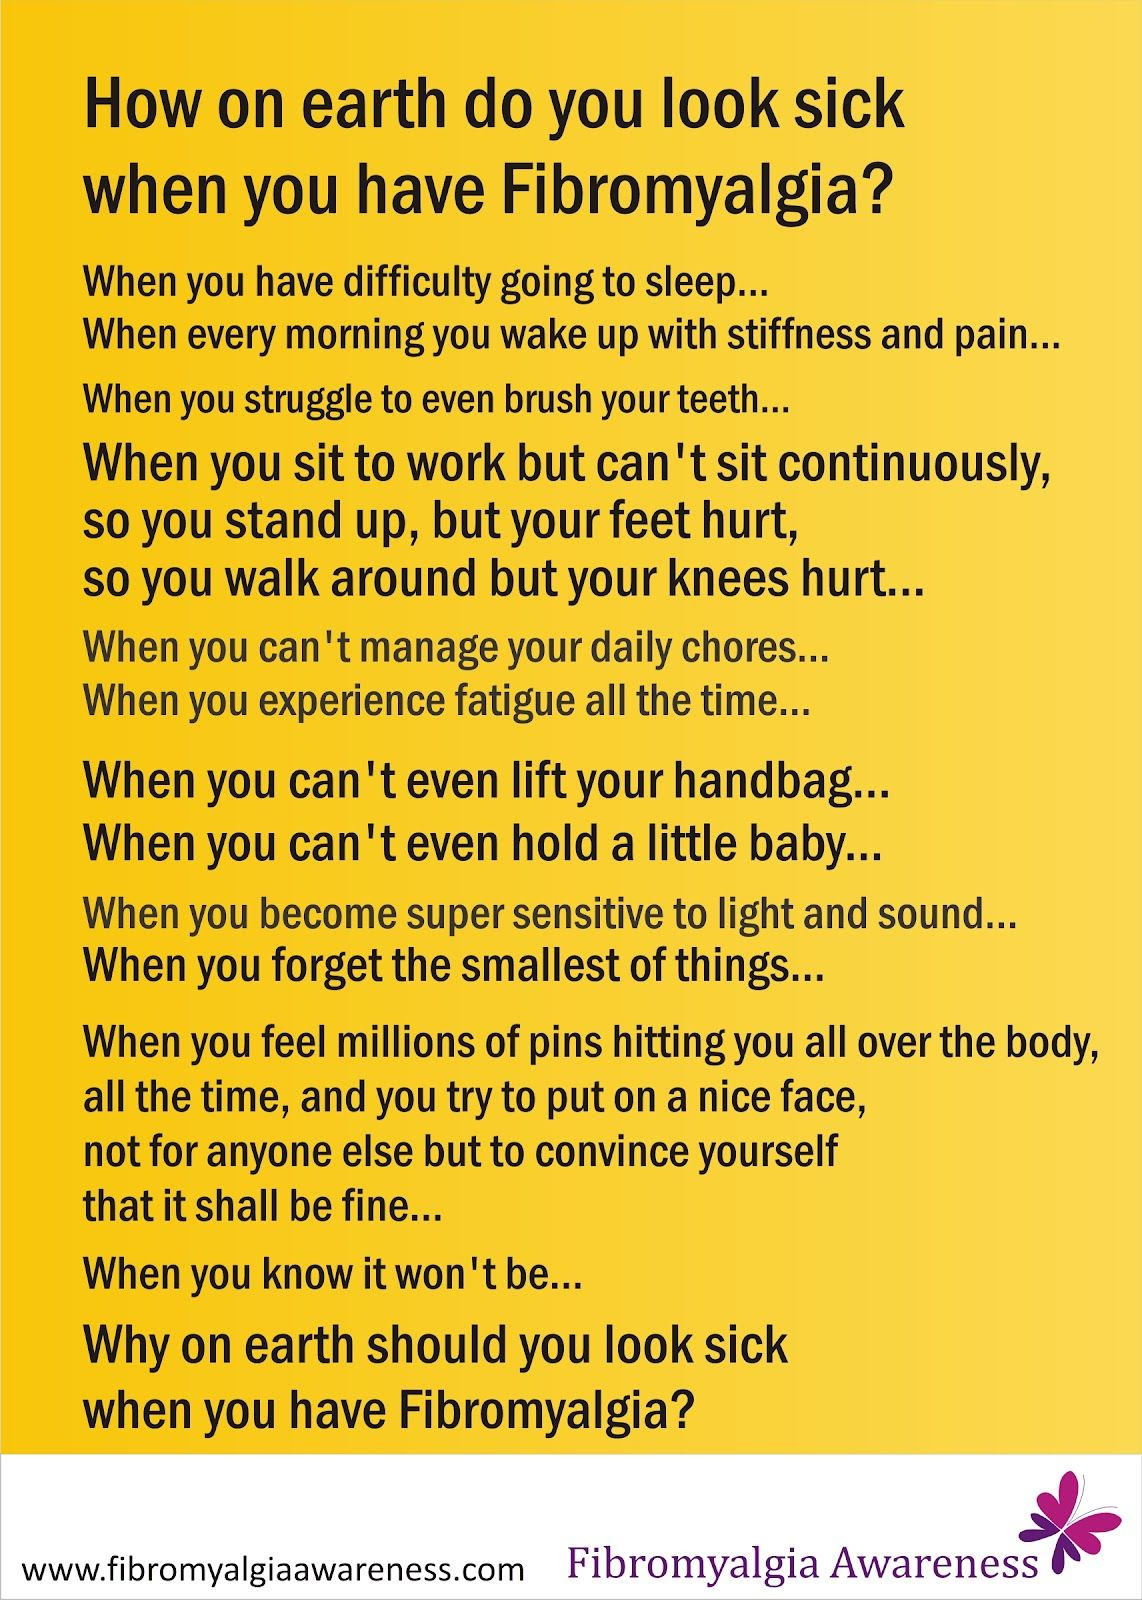 Fibromyalgia Awareness   Information, Tips, Support, Patient Stories: How on earth do you look sick?